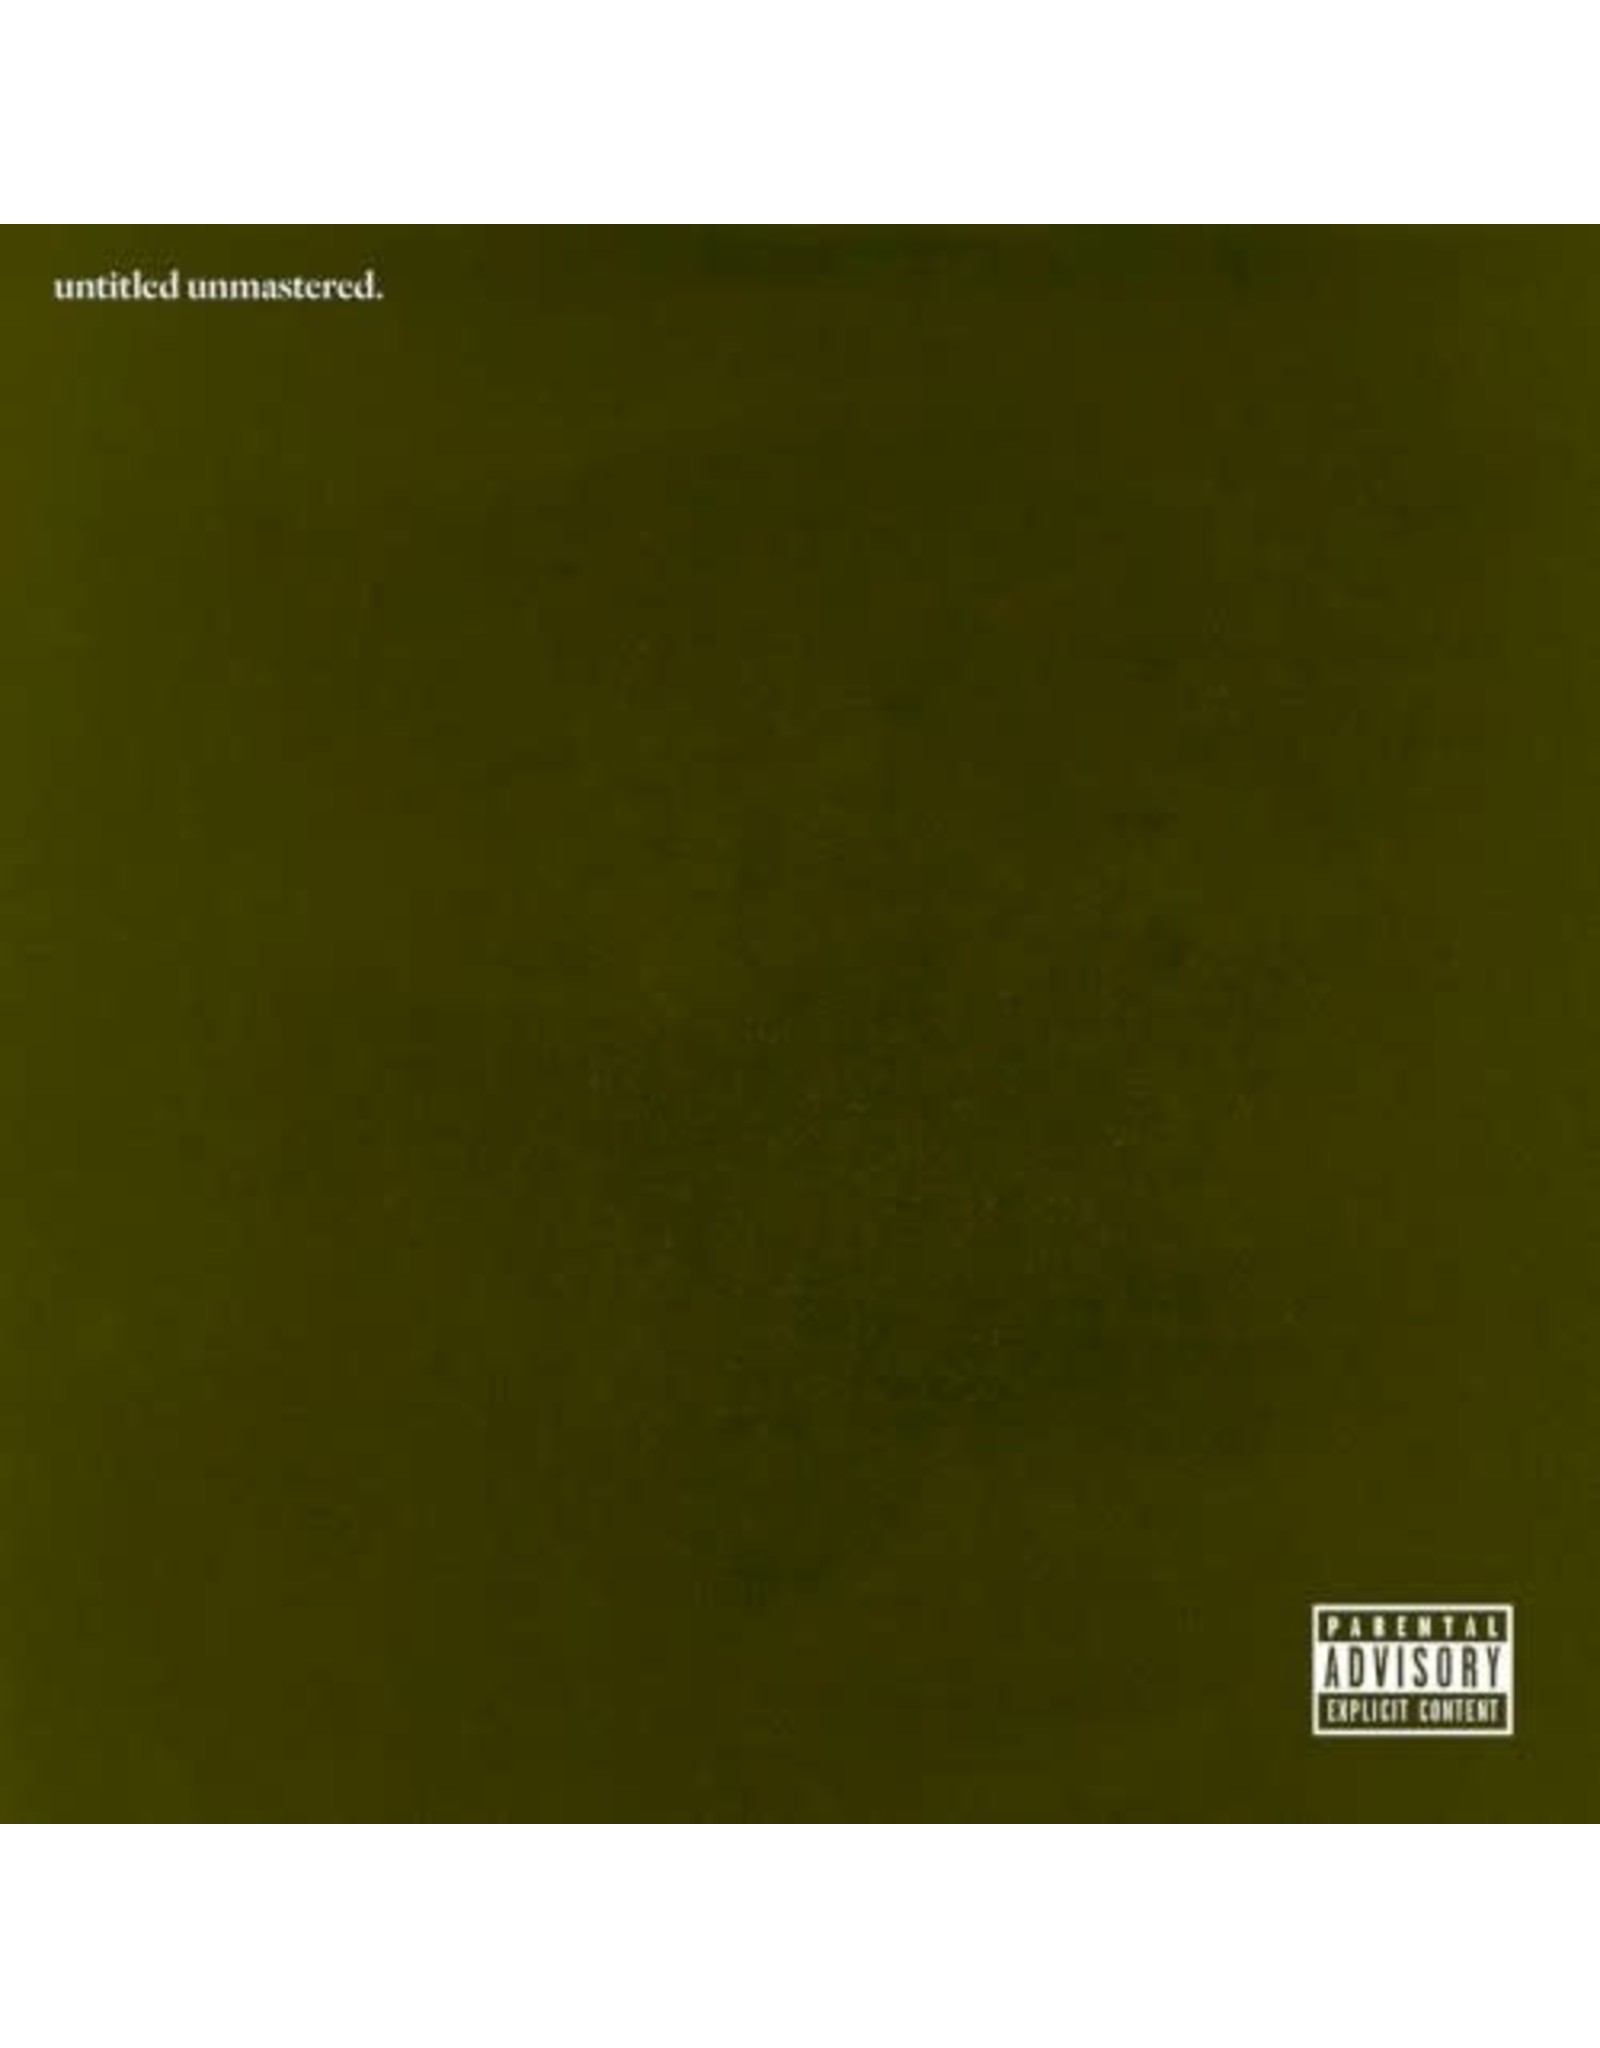 Lamar, Kendrick - untitled unmastered LP